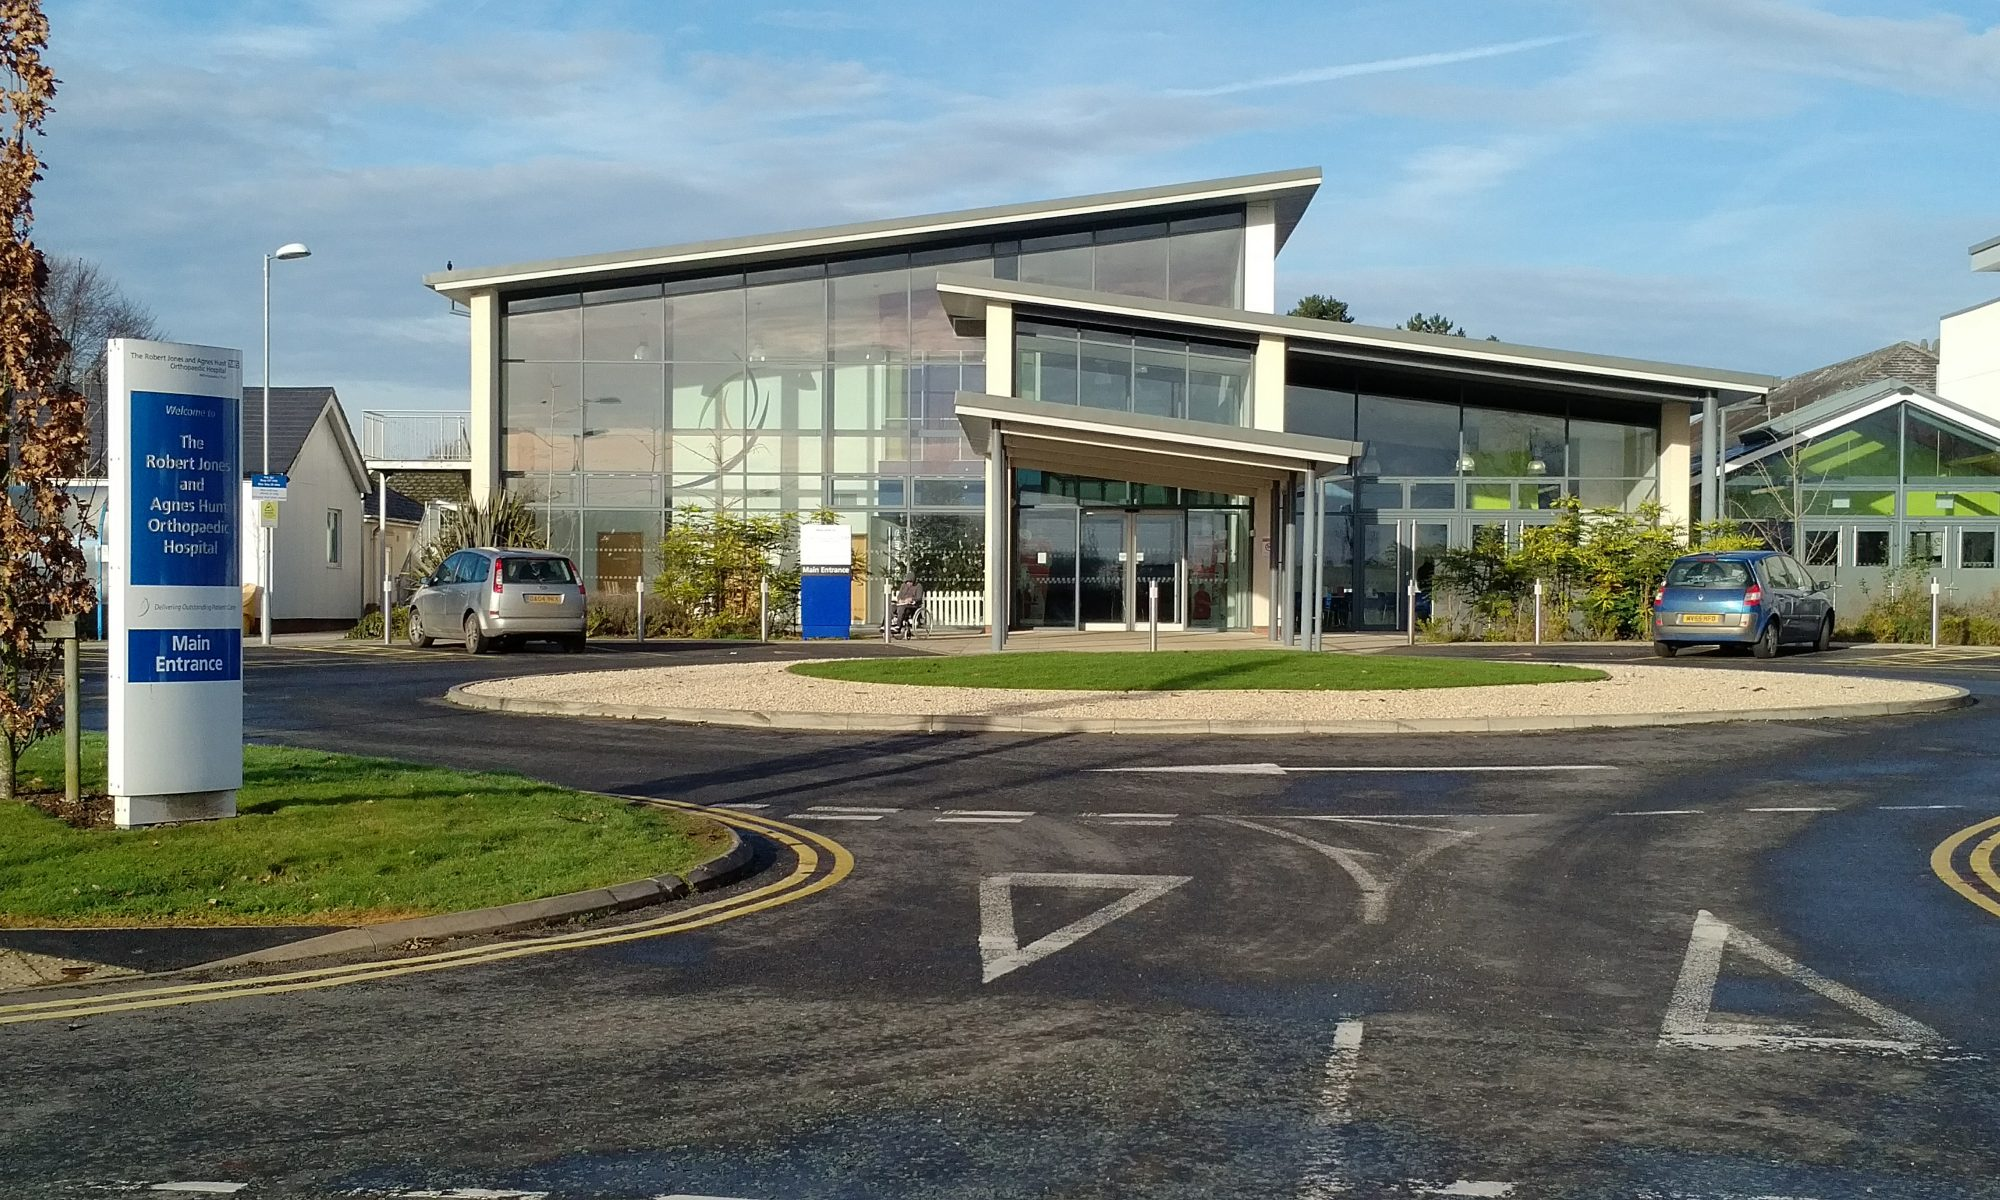 NHS & Social Care: Orthopaedic Hospital in Gobowen